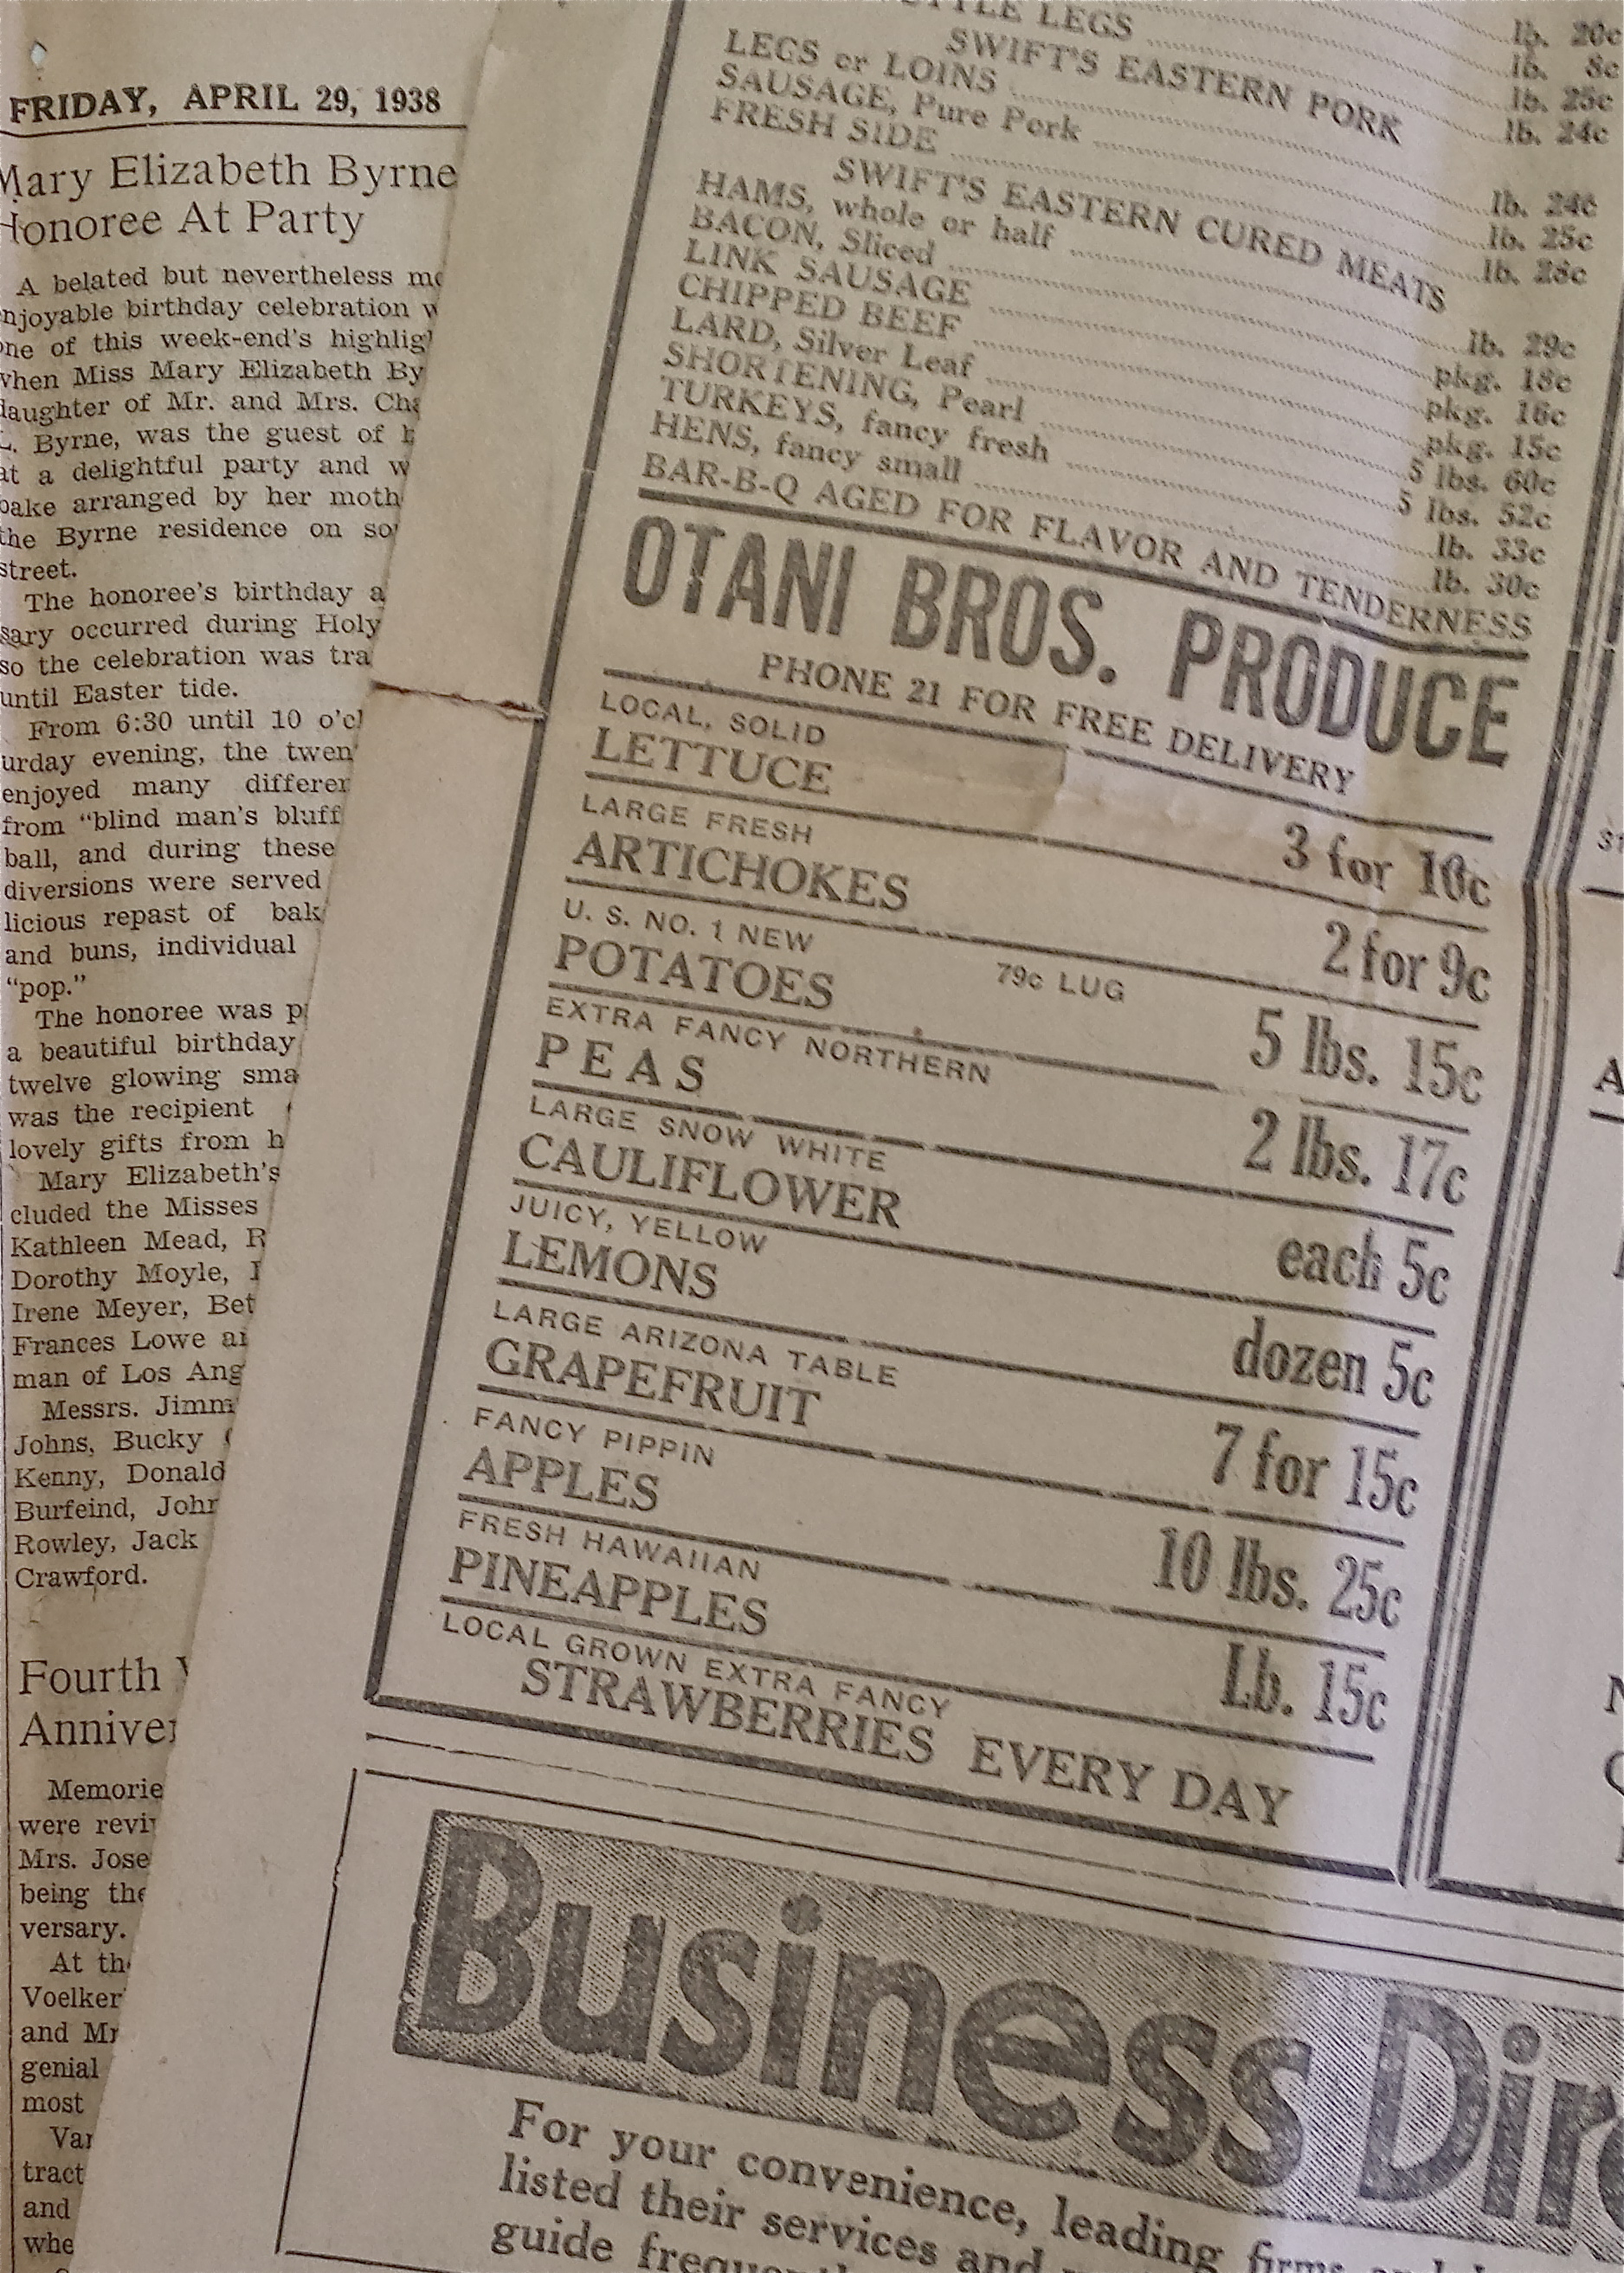 """Otani Bros. Produce newspaper add from 1938. Our phone number was 21! """"Phone 21 for Free Delivery"""""""